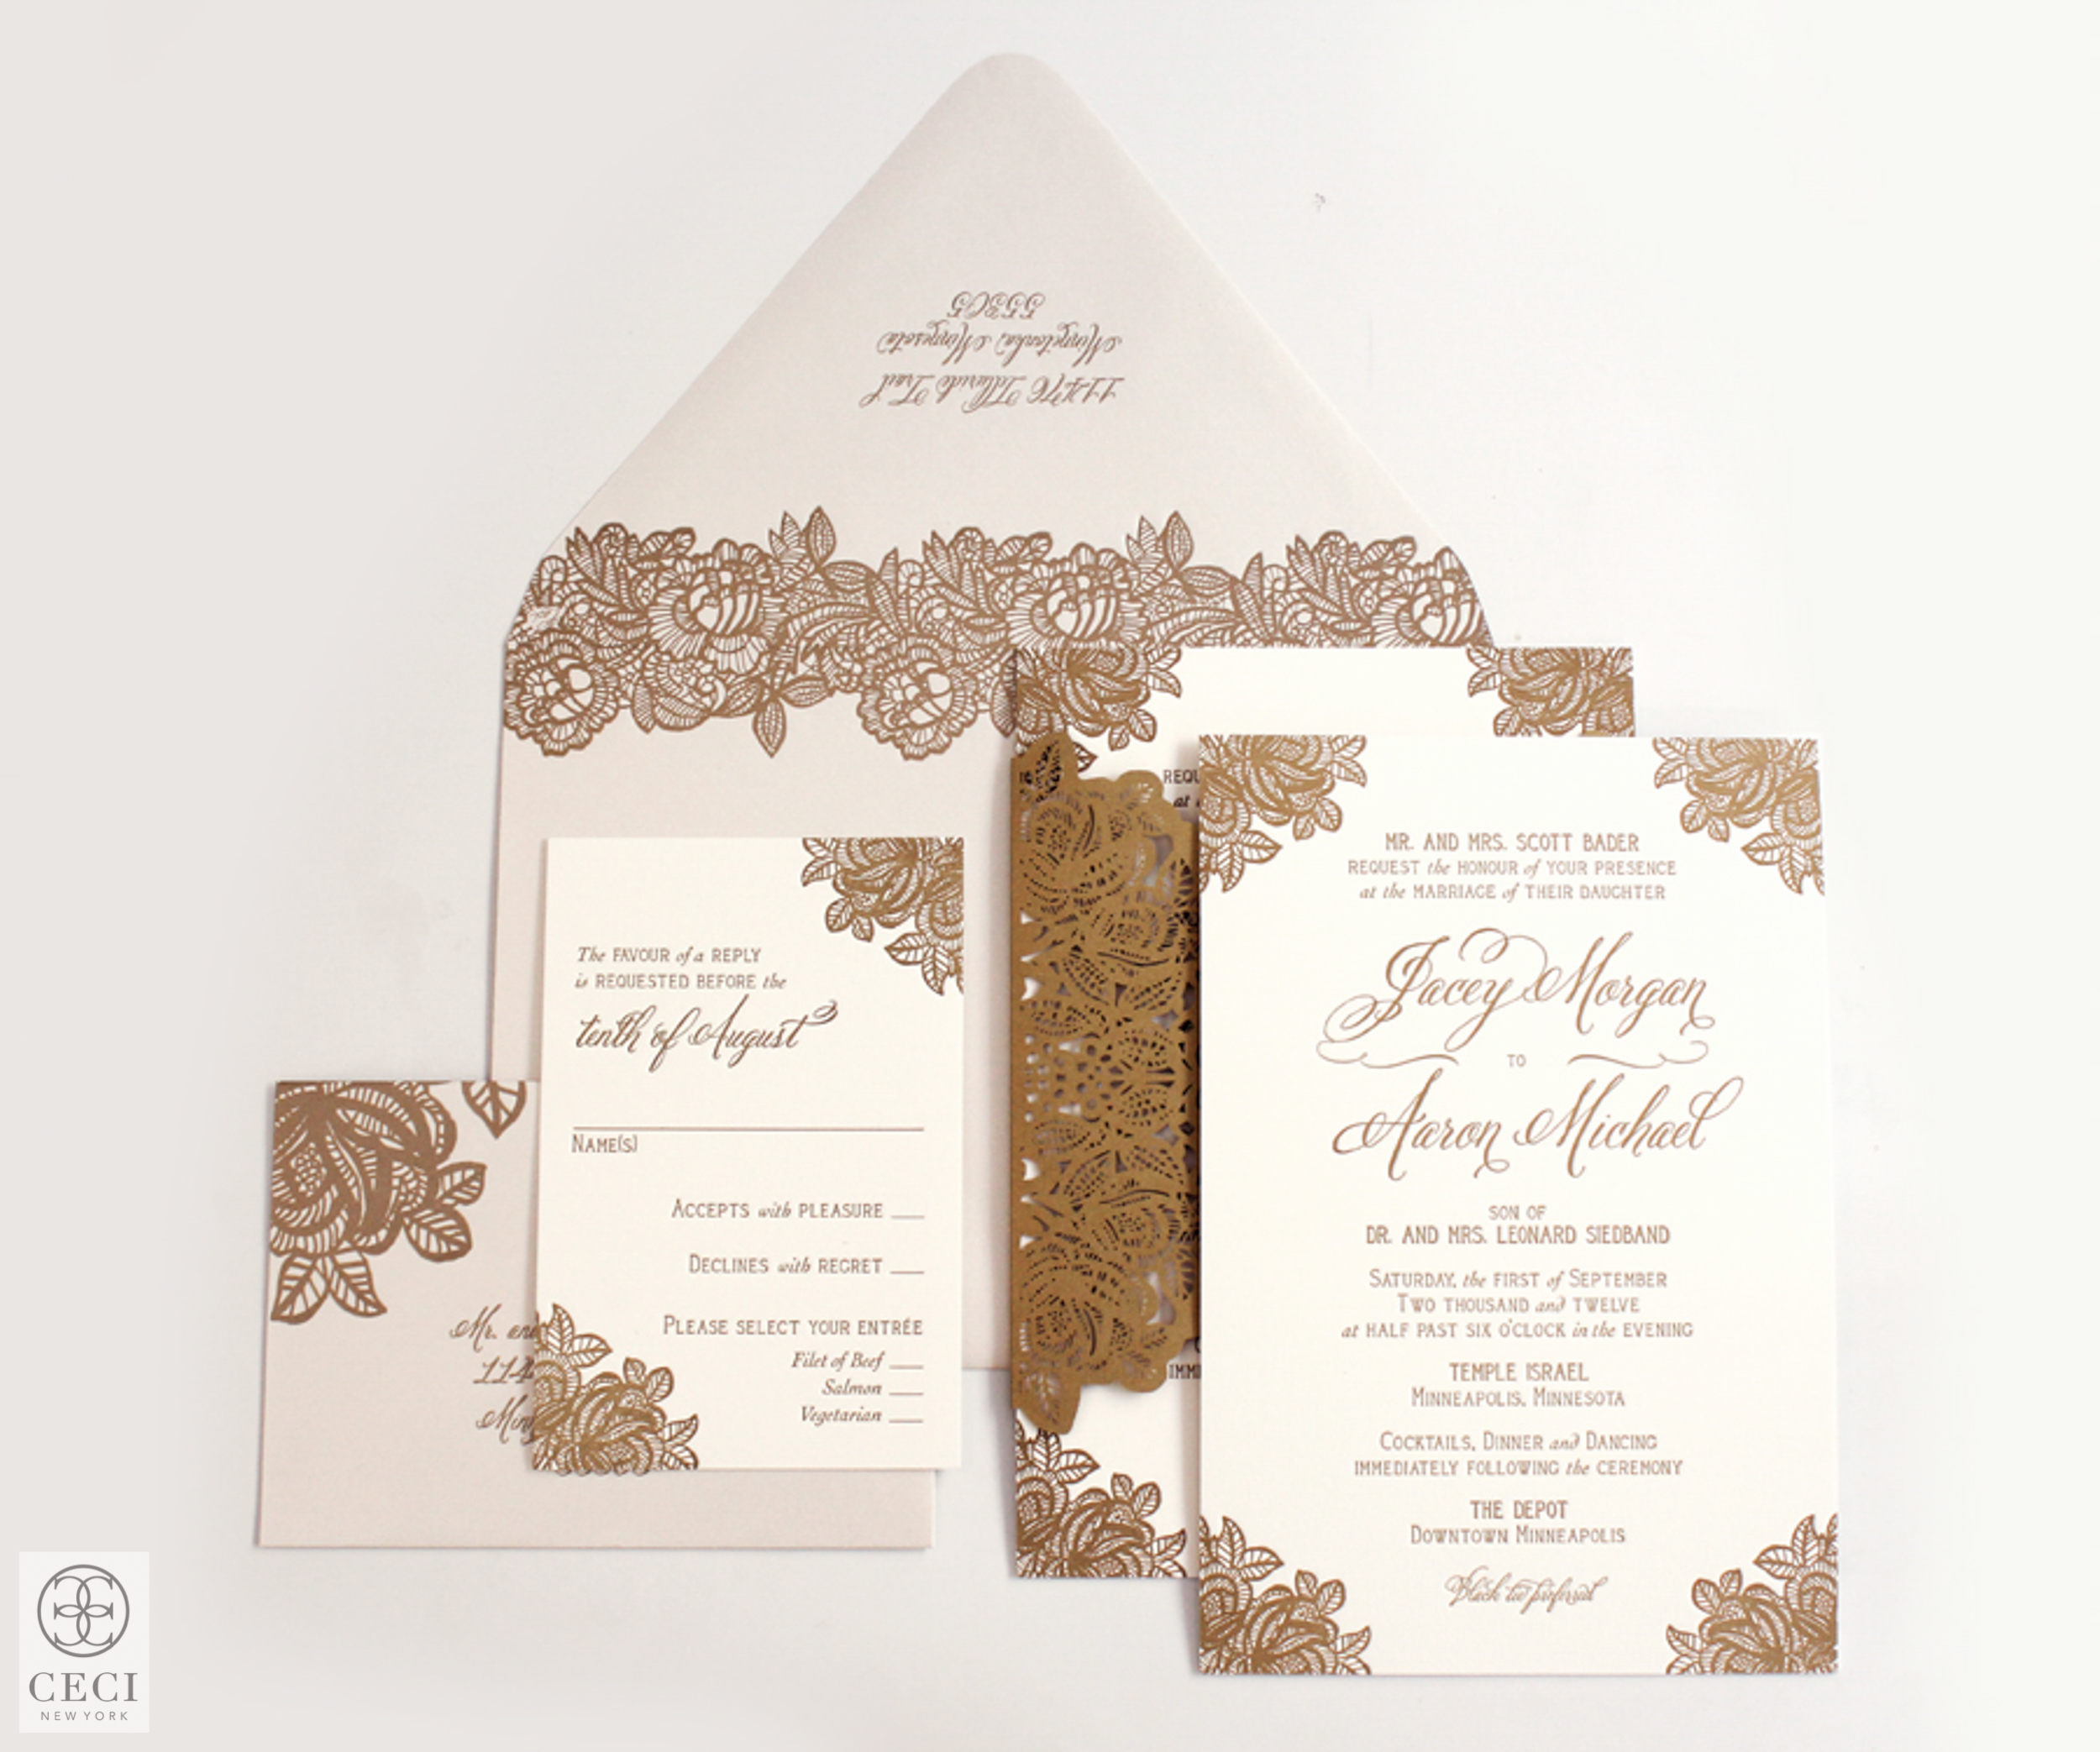 Ceci_New_York_Ceci_Style_Ceci_Johnson_Luxury_Lifestyle_Floral_Lace_Wedding_Letterpress_Inspiration_Design_Custom_Couture_Personalized_Invitations_-8.jpg